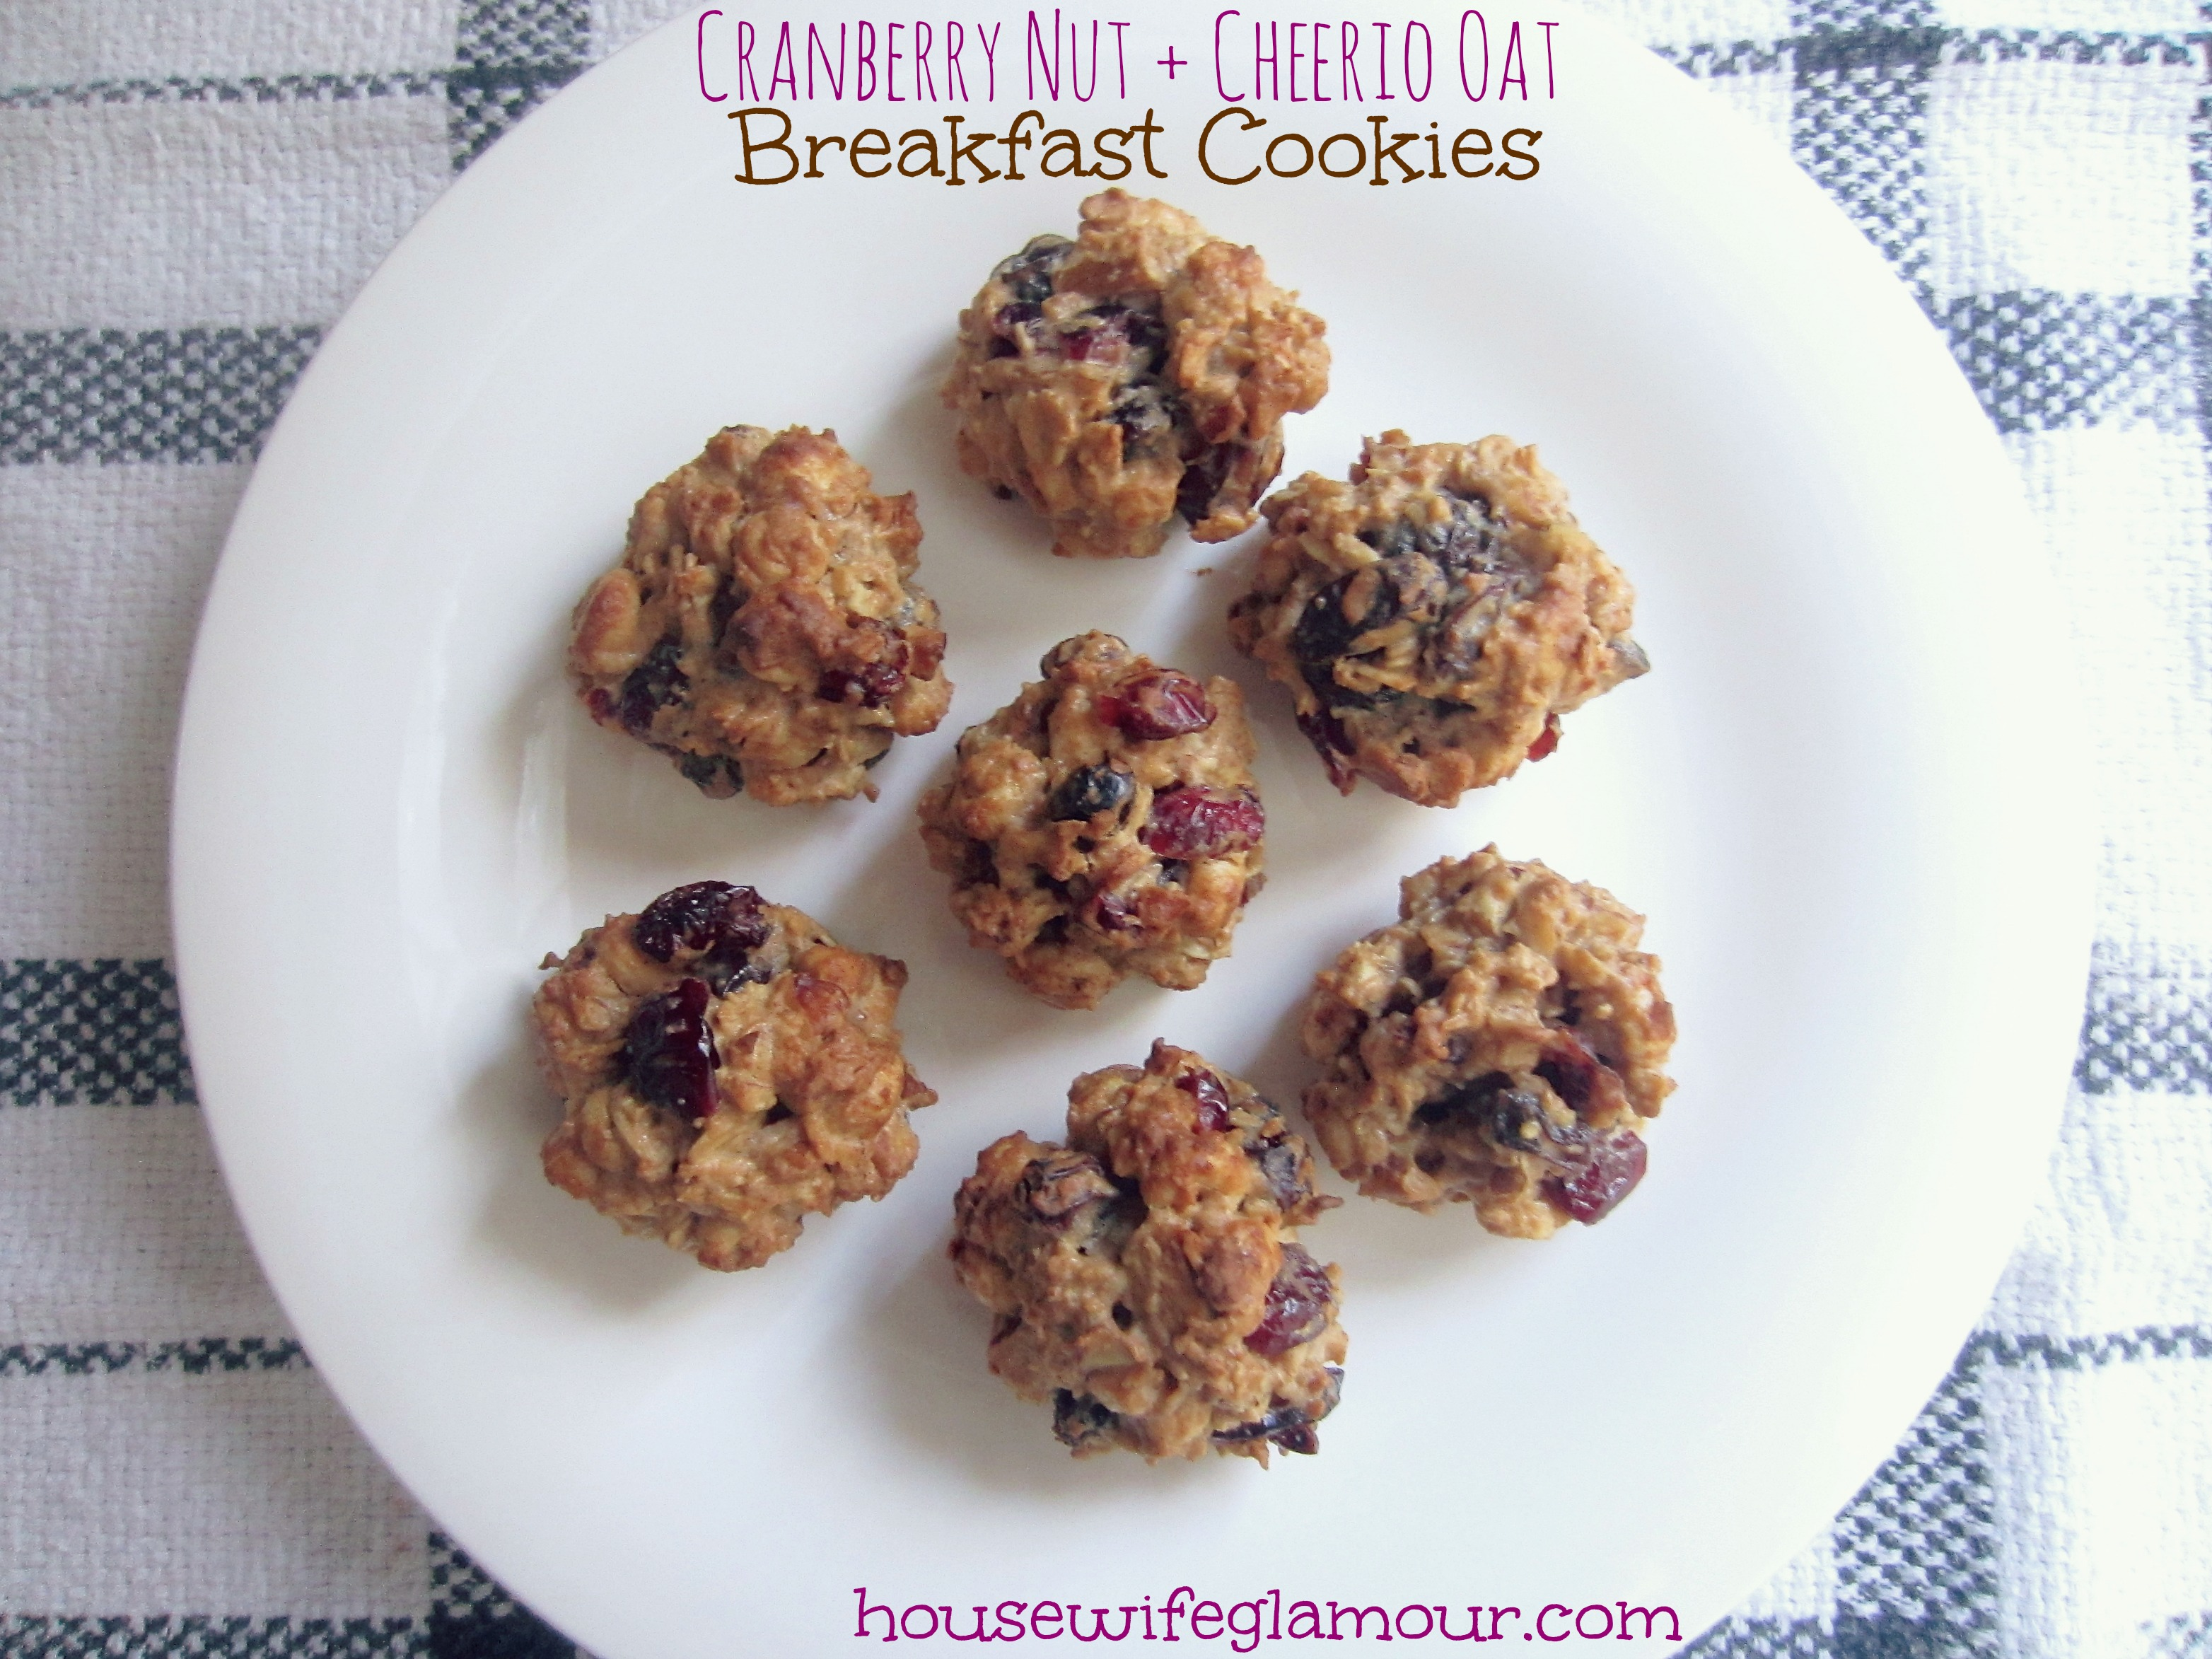 Cranberry Nut Cheerio Oat Breakfast Cookies